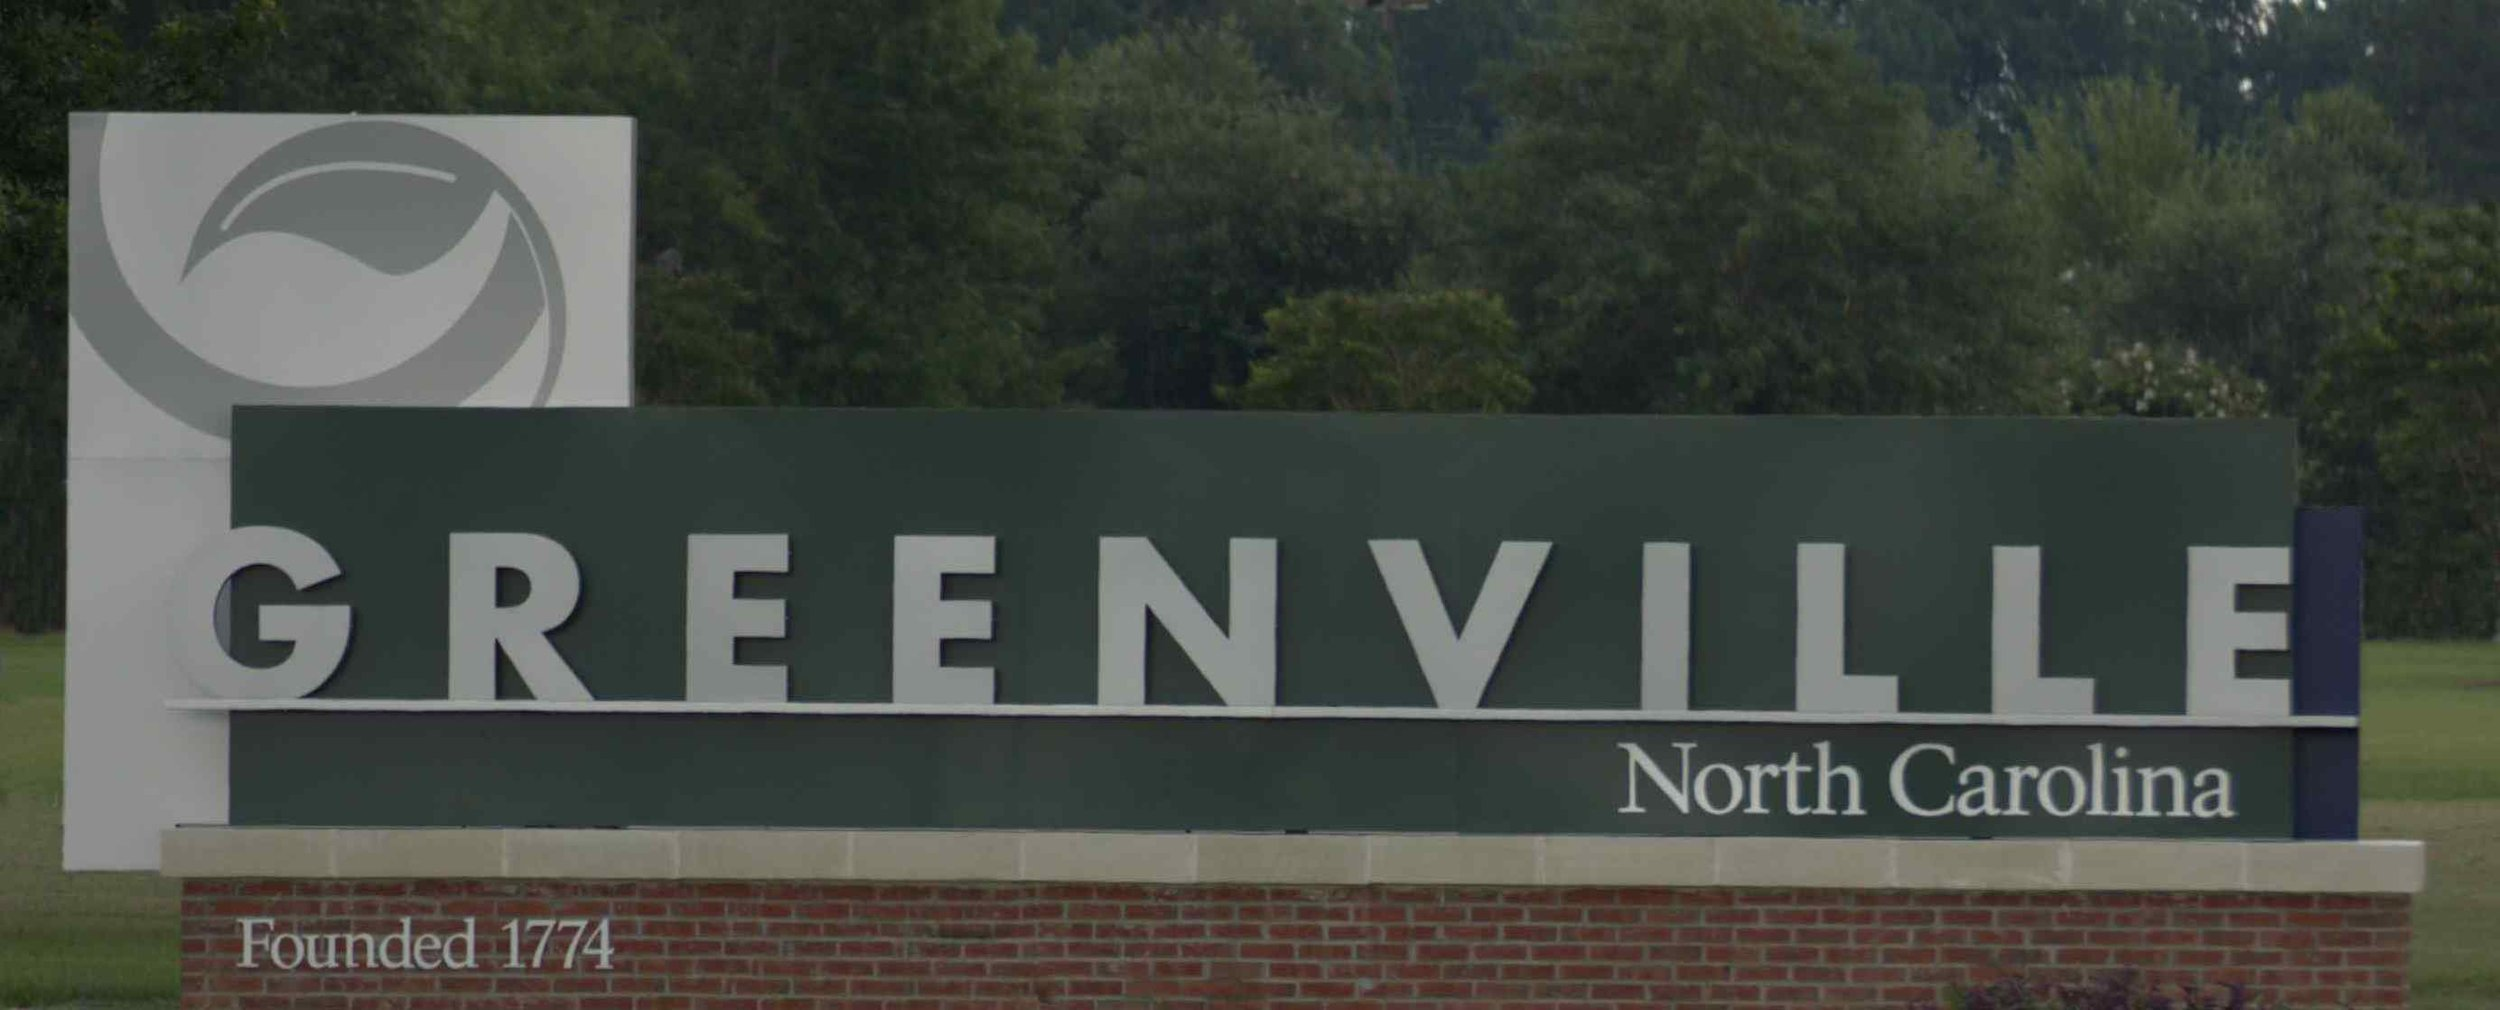 Greenville Welcome Sign.jpg